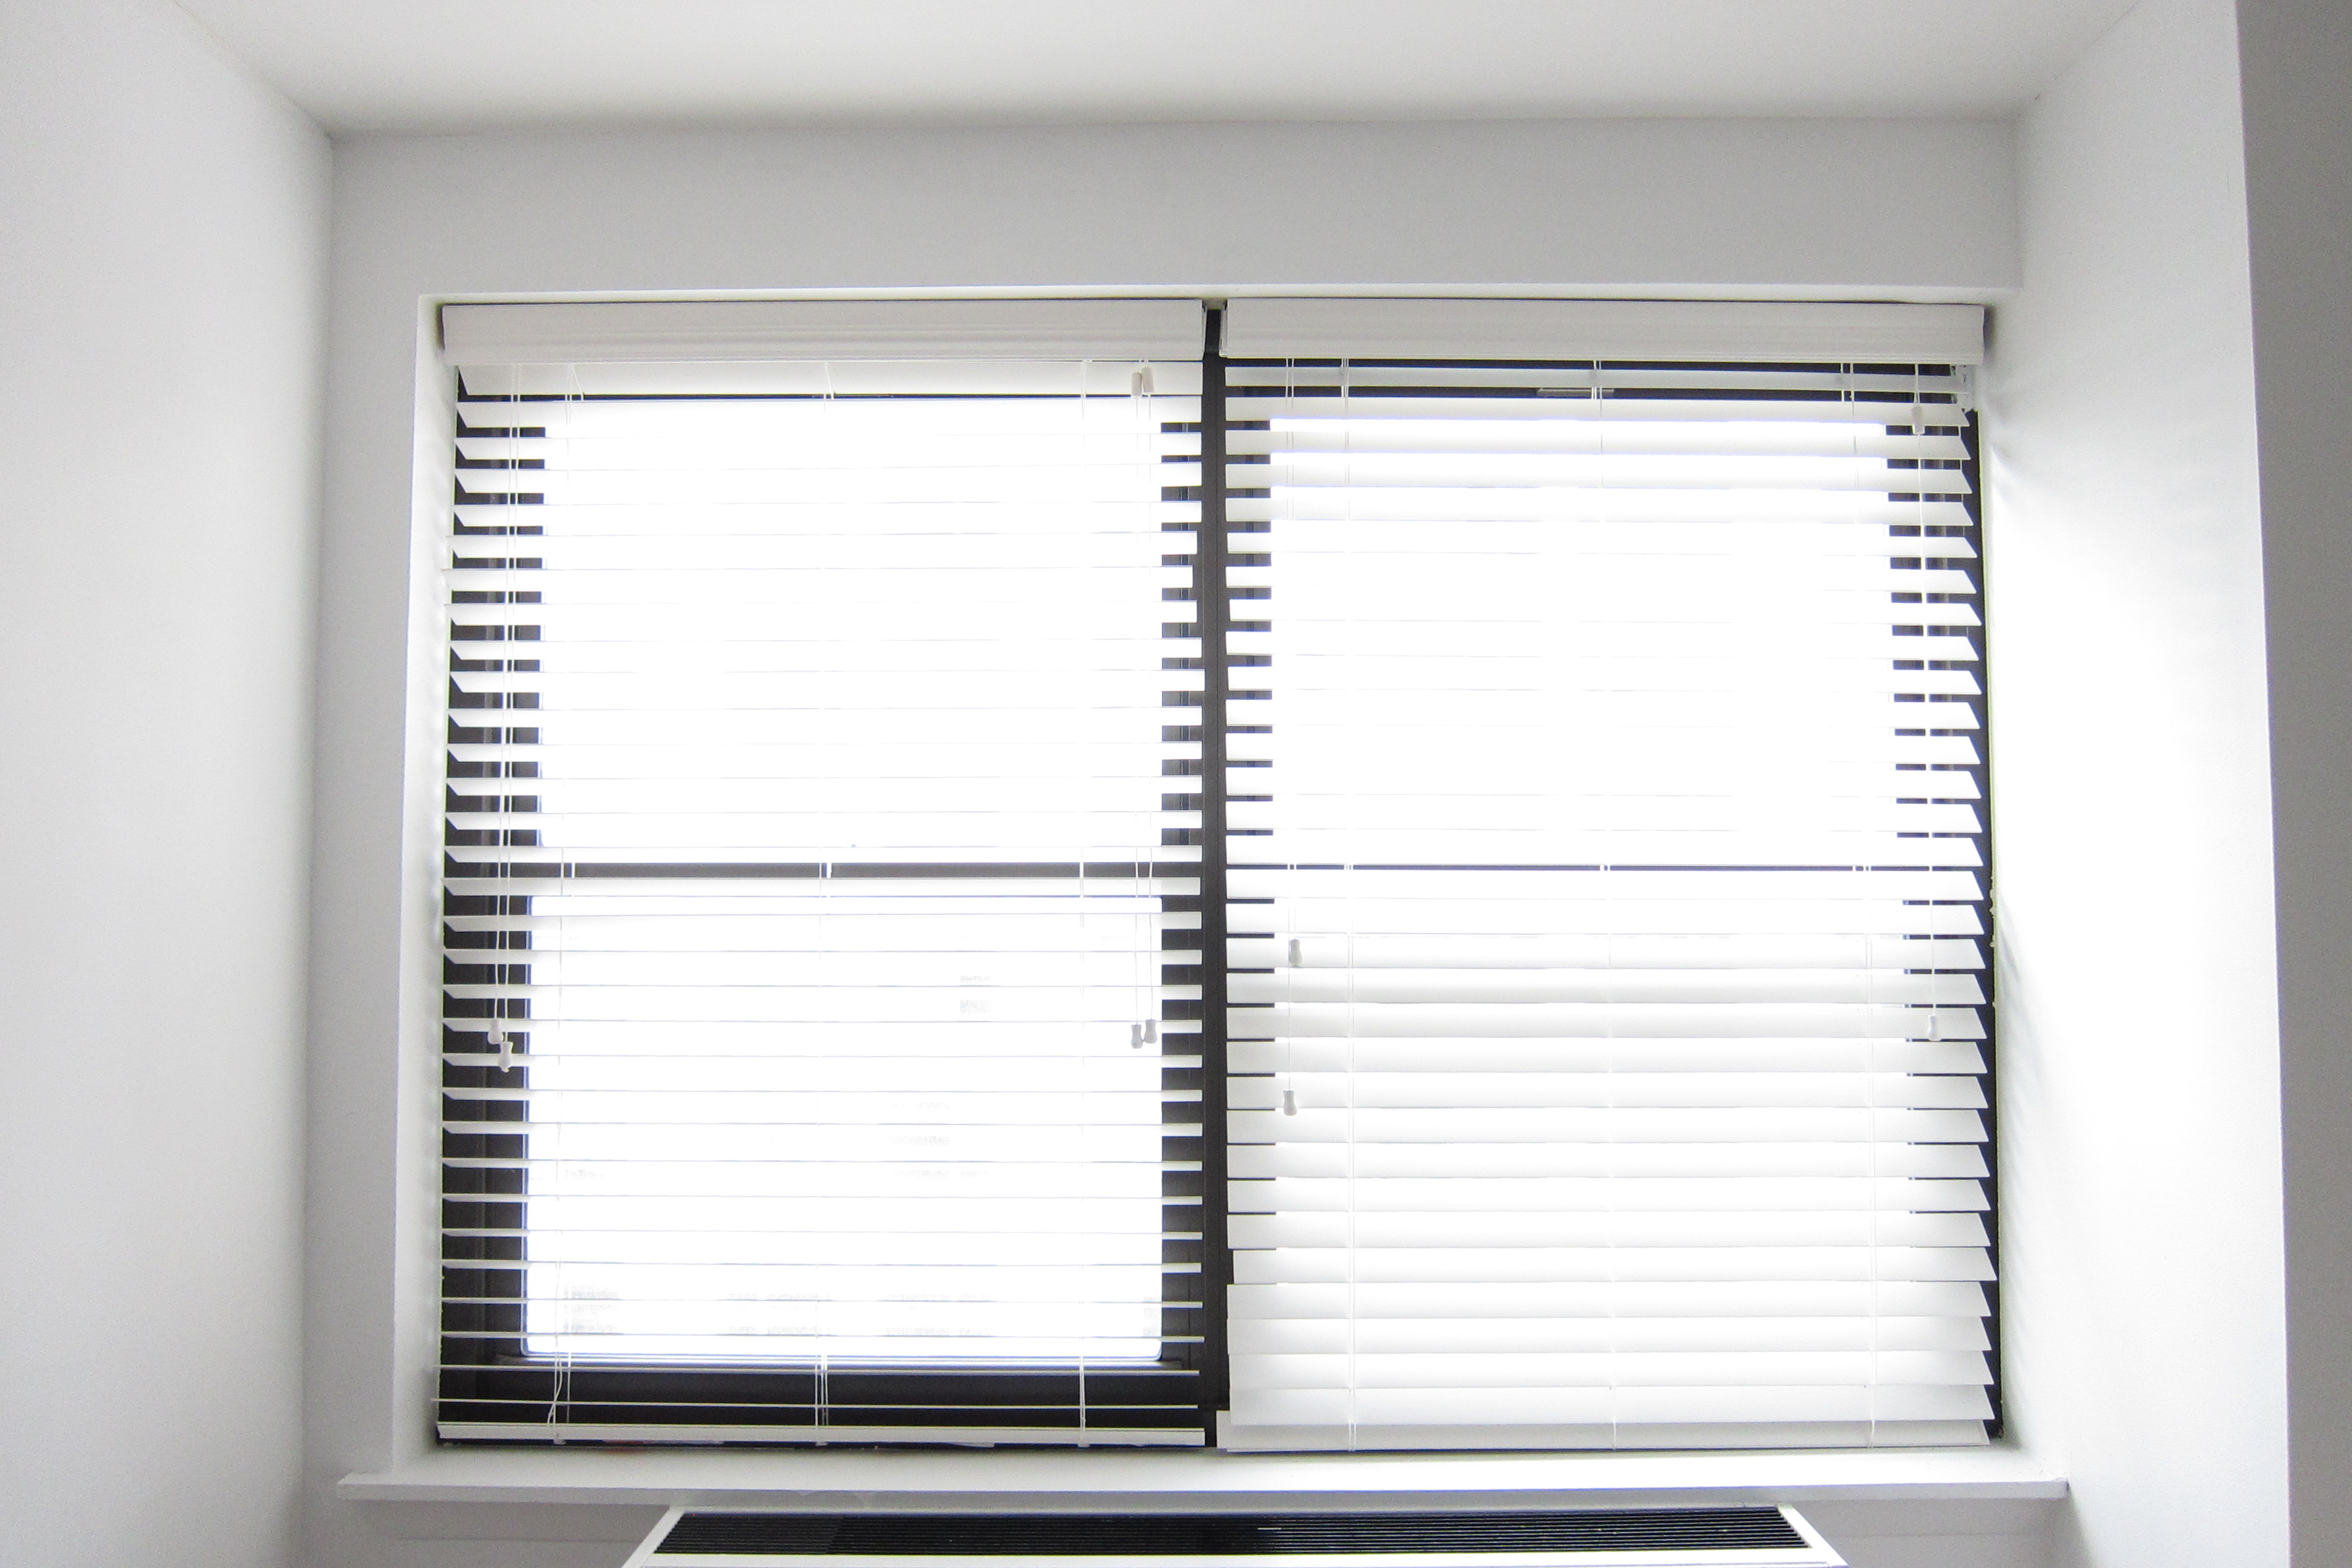 blinds shopping pleat size nexts info online of and com full next pinch drapes image living room curtain select ideas awful curtains for pleated selectblinds home eyelet news